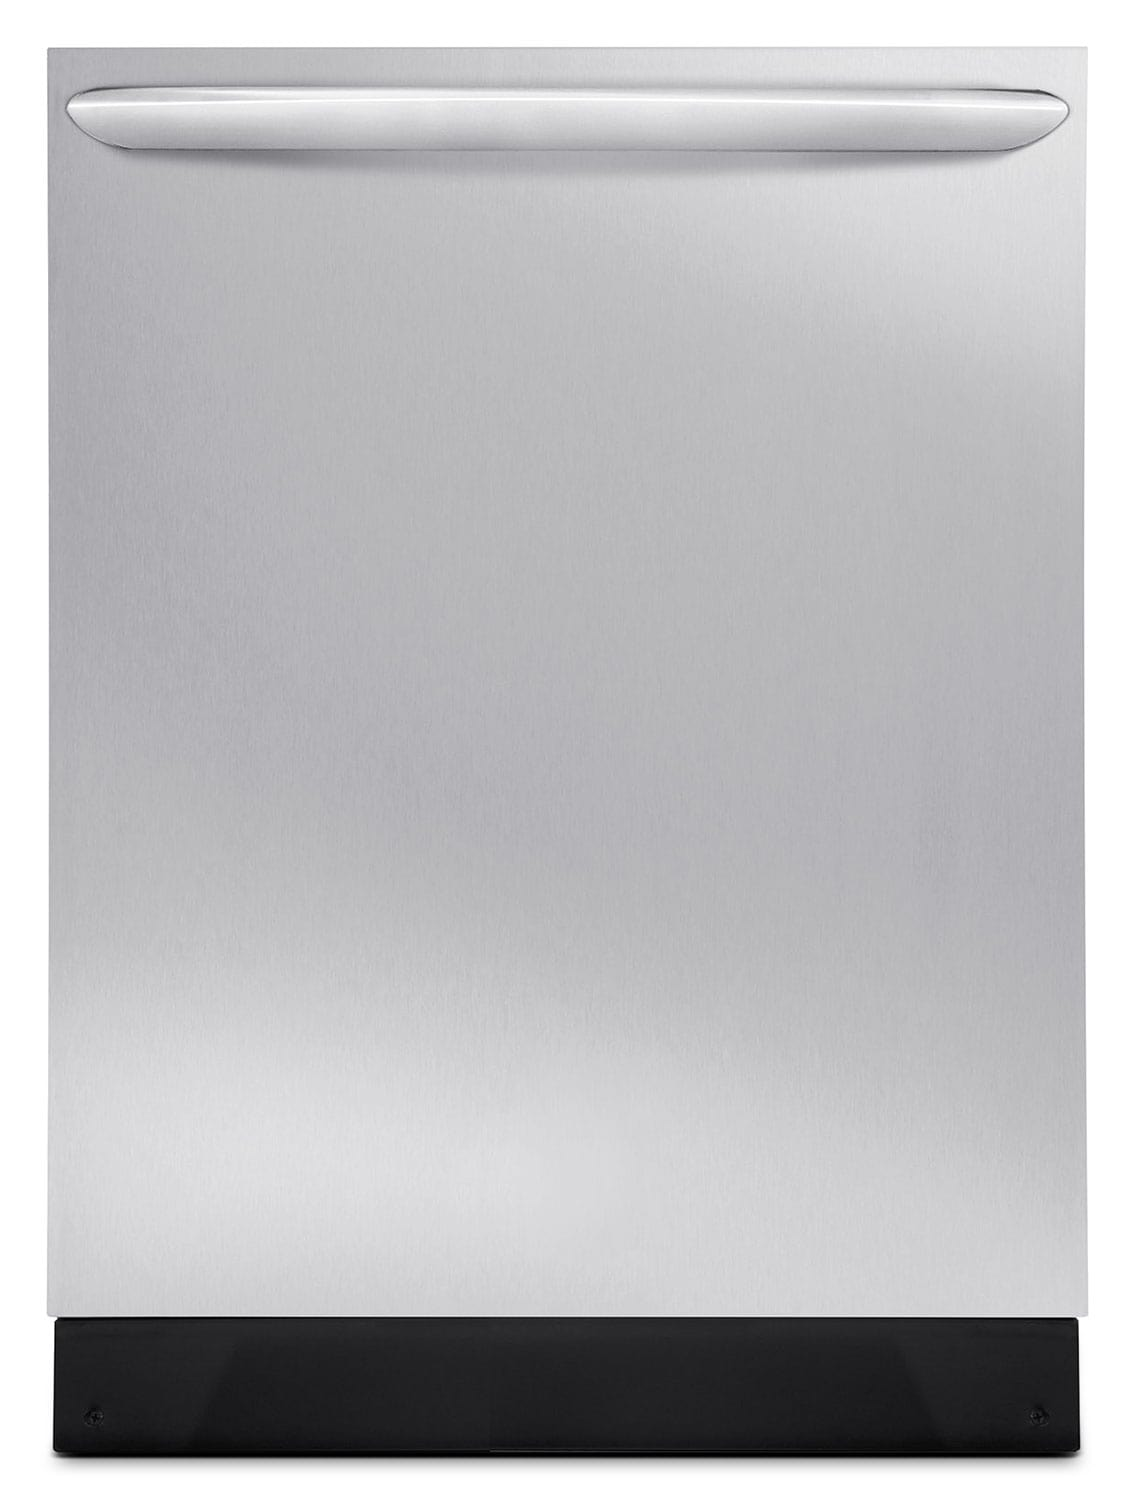 "Clean-Up - Frigidaire Gallery Stainless Steel 24"" Dishwasher - FGID2477RF"